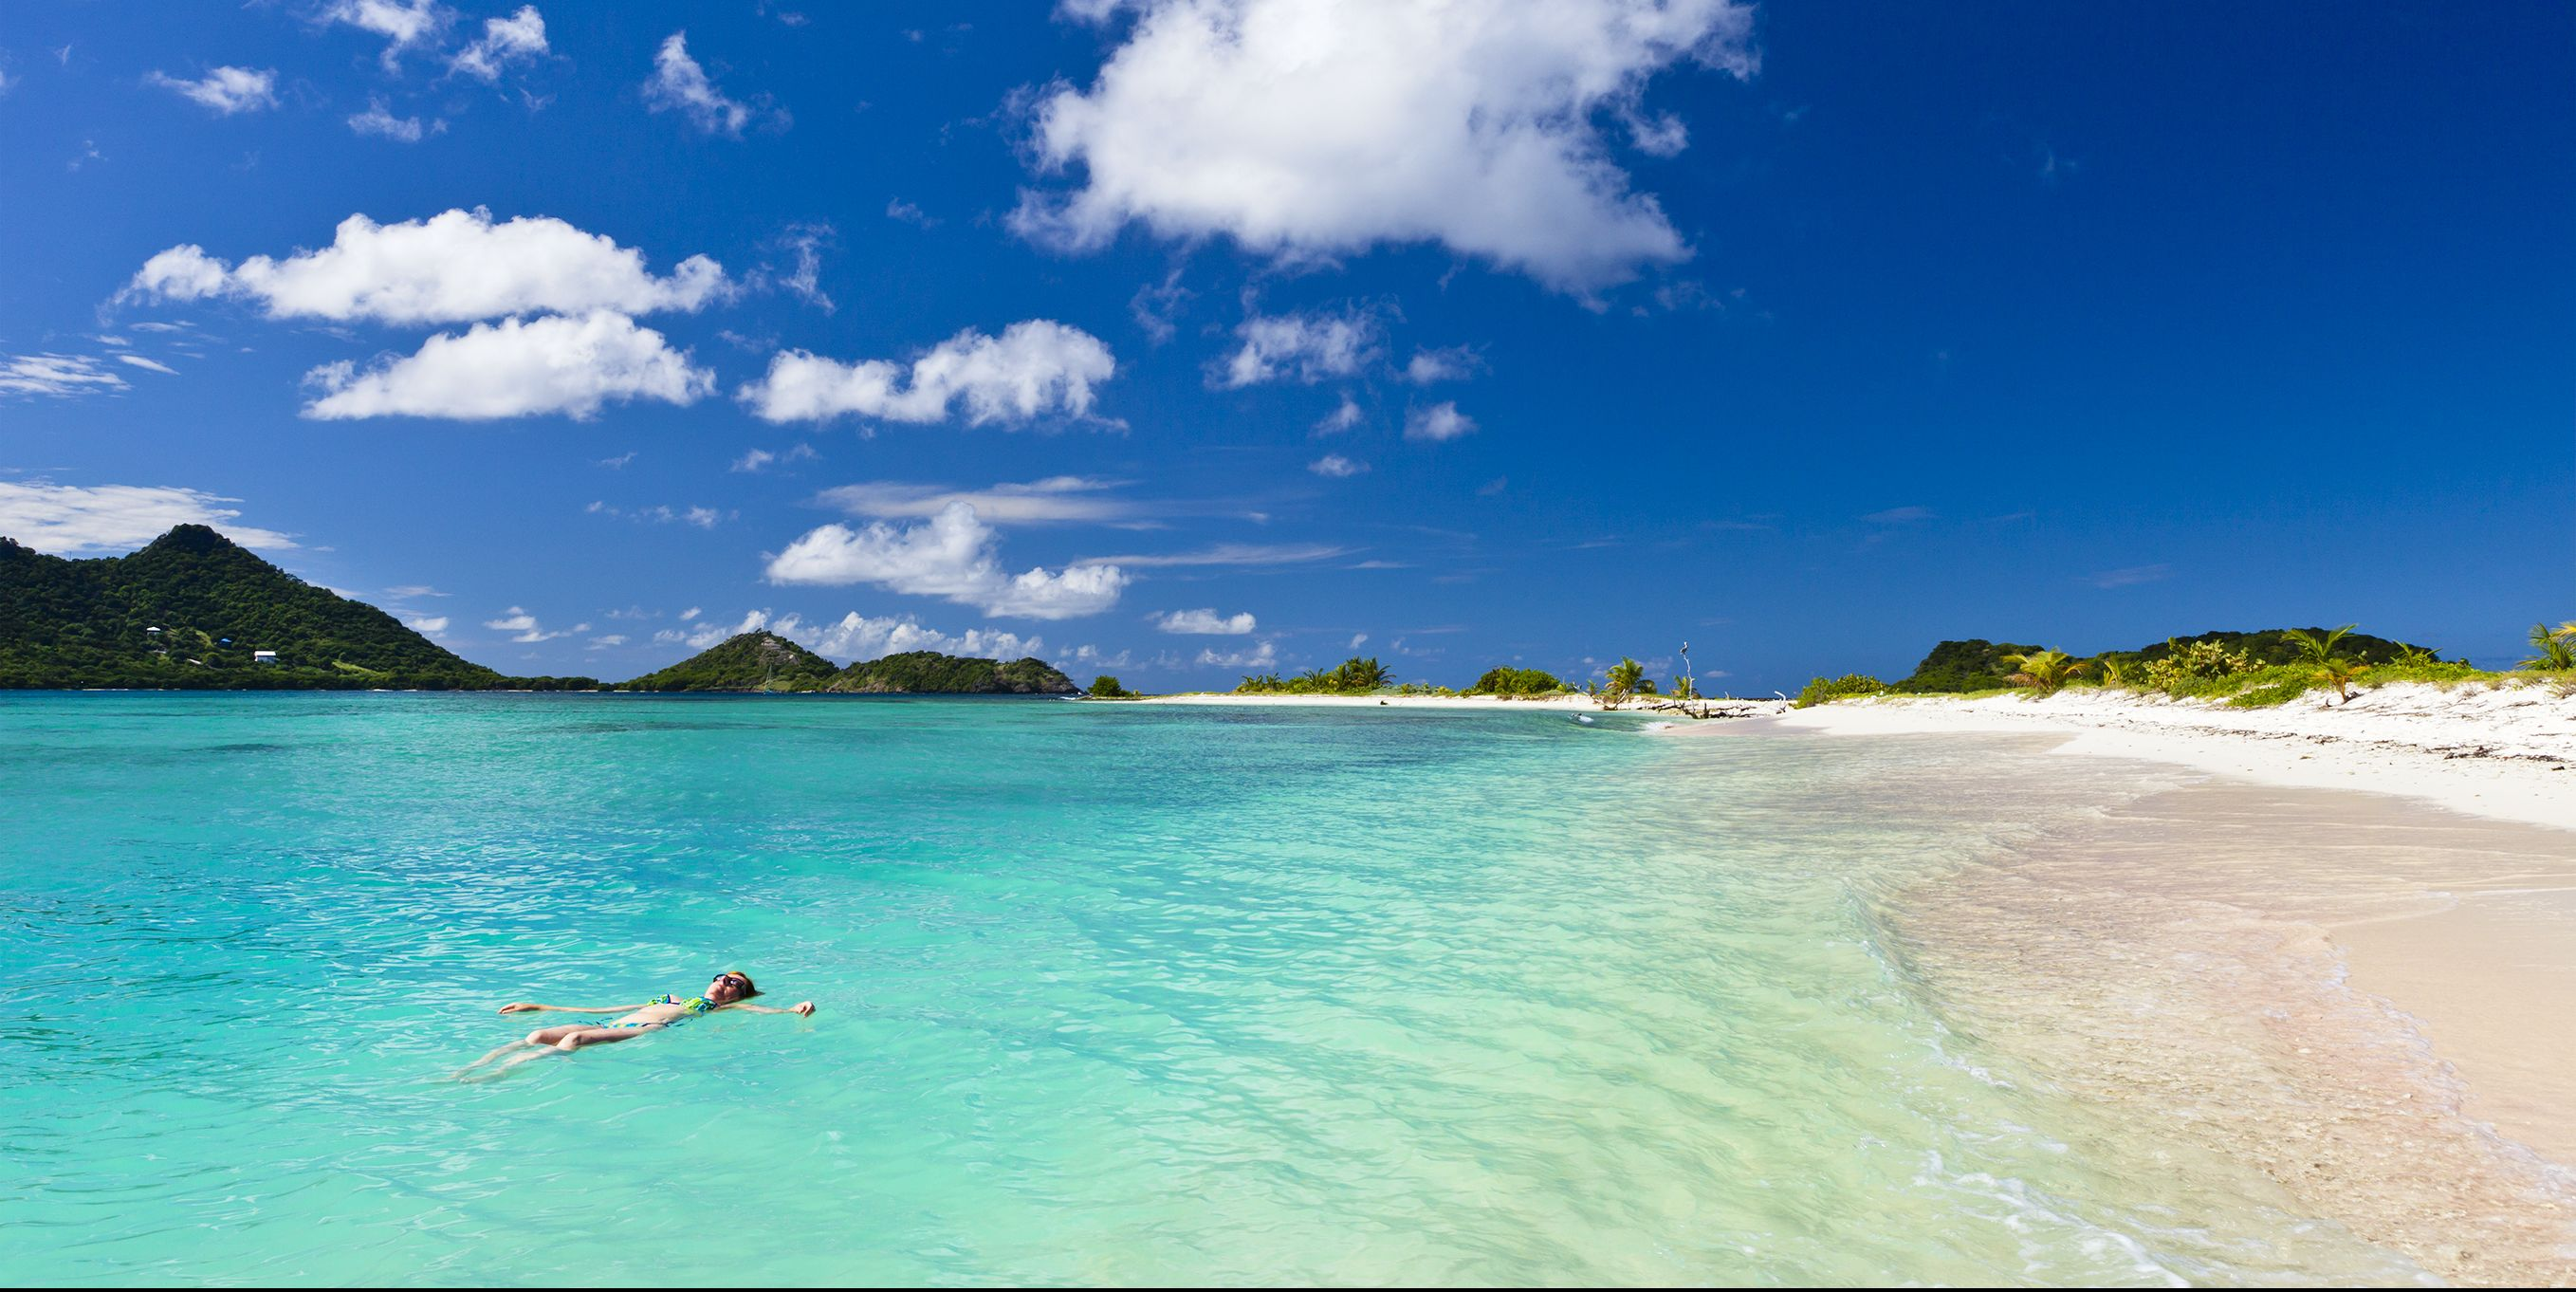 Landscape shot of clear blue water at Sandy Island, Grenada